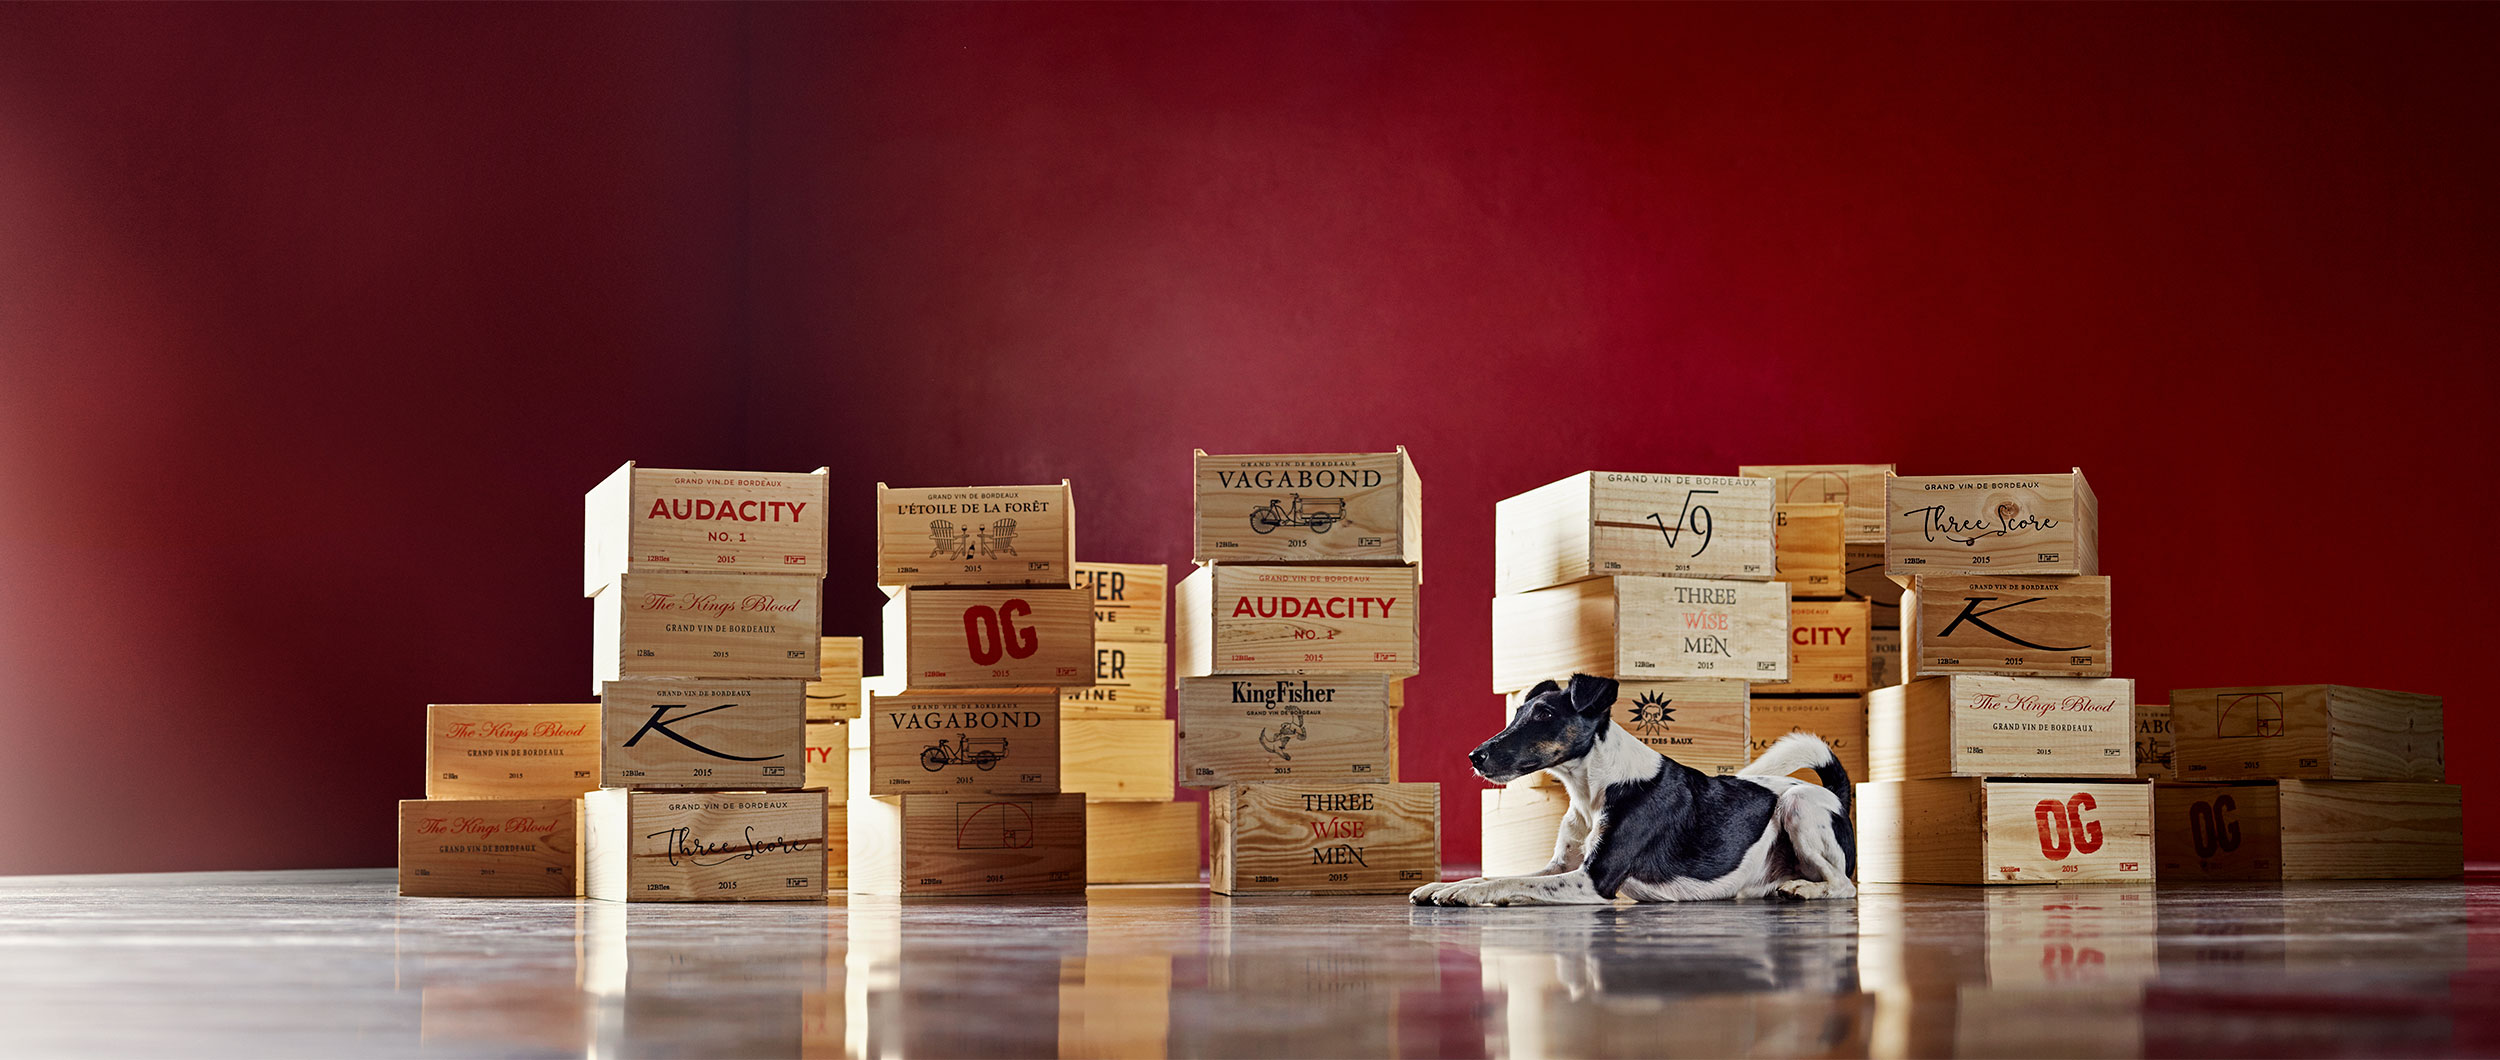 Custom Bordeaux wines boxed and branded